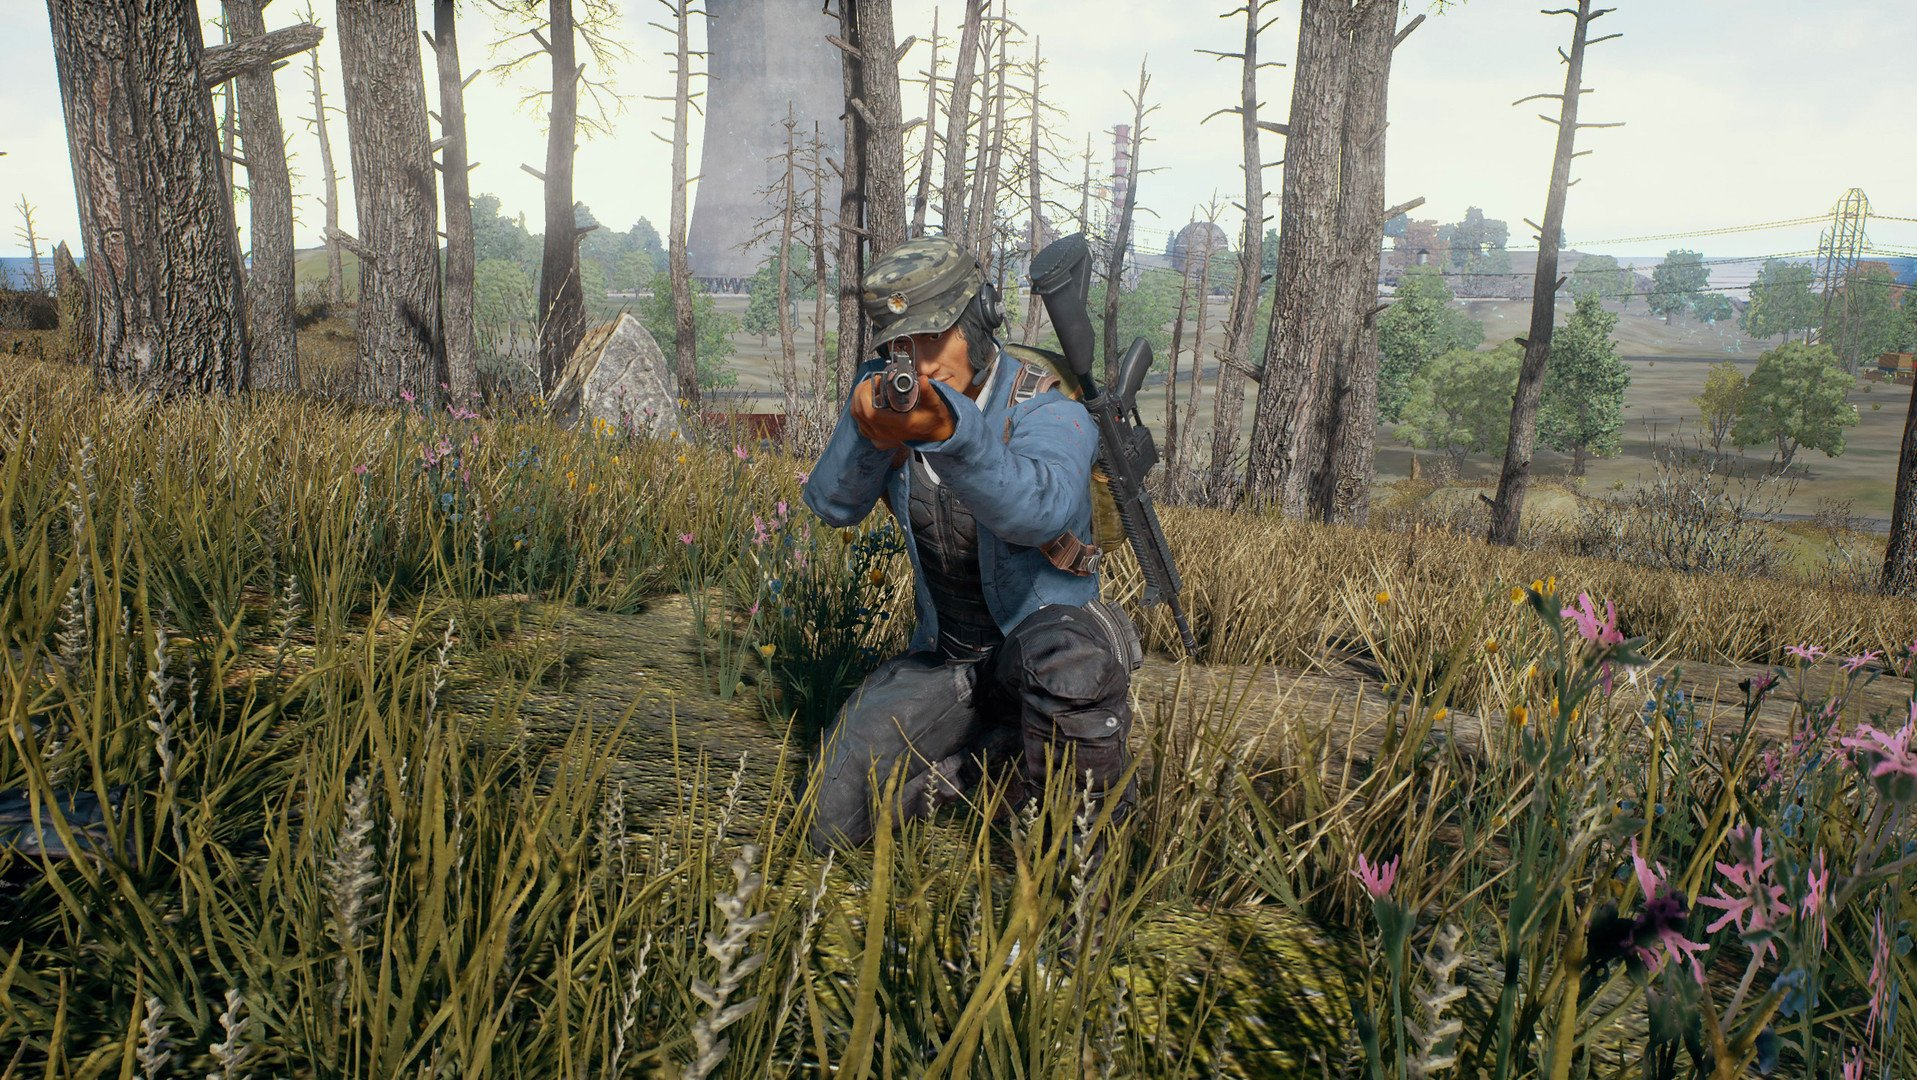 Knock 25% off PlayerUnknown's Battlegrounds as first deal is spotted screenshot